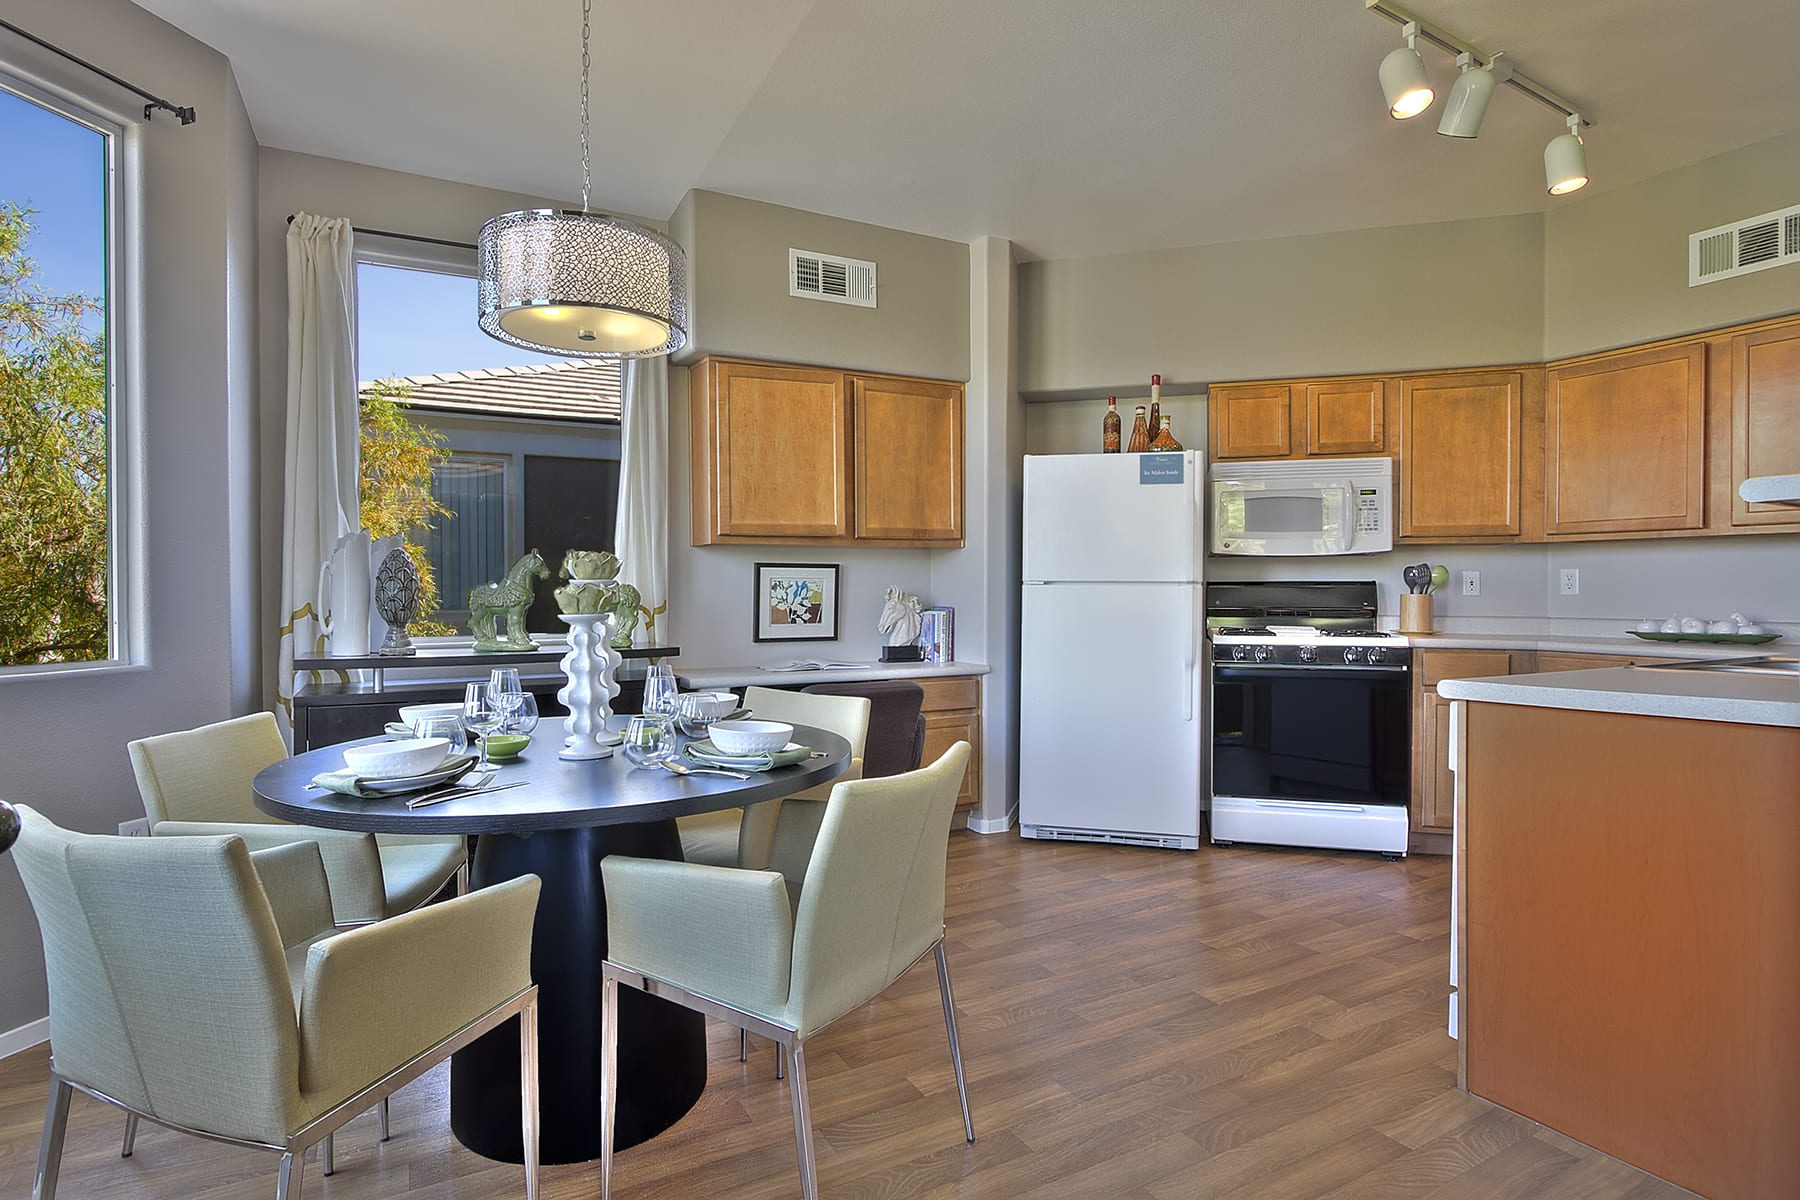 A kitchen with wooden cabinets, matching appliances, and a modern dining table.